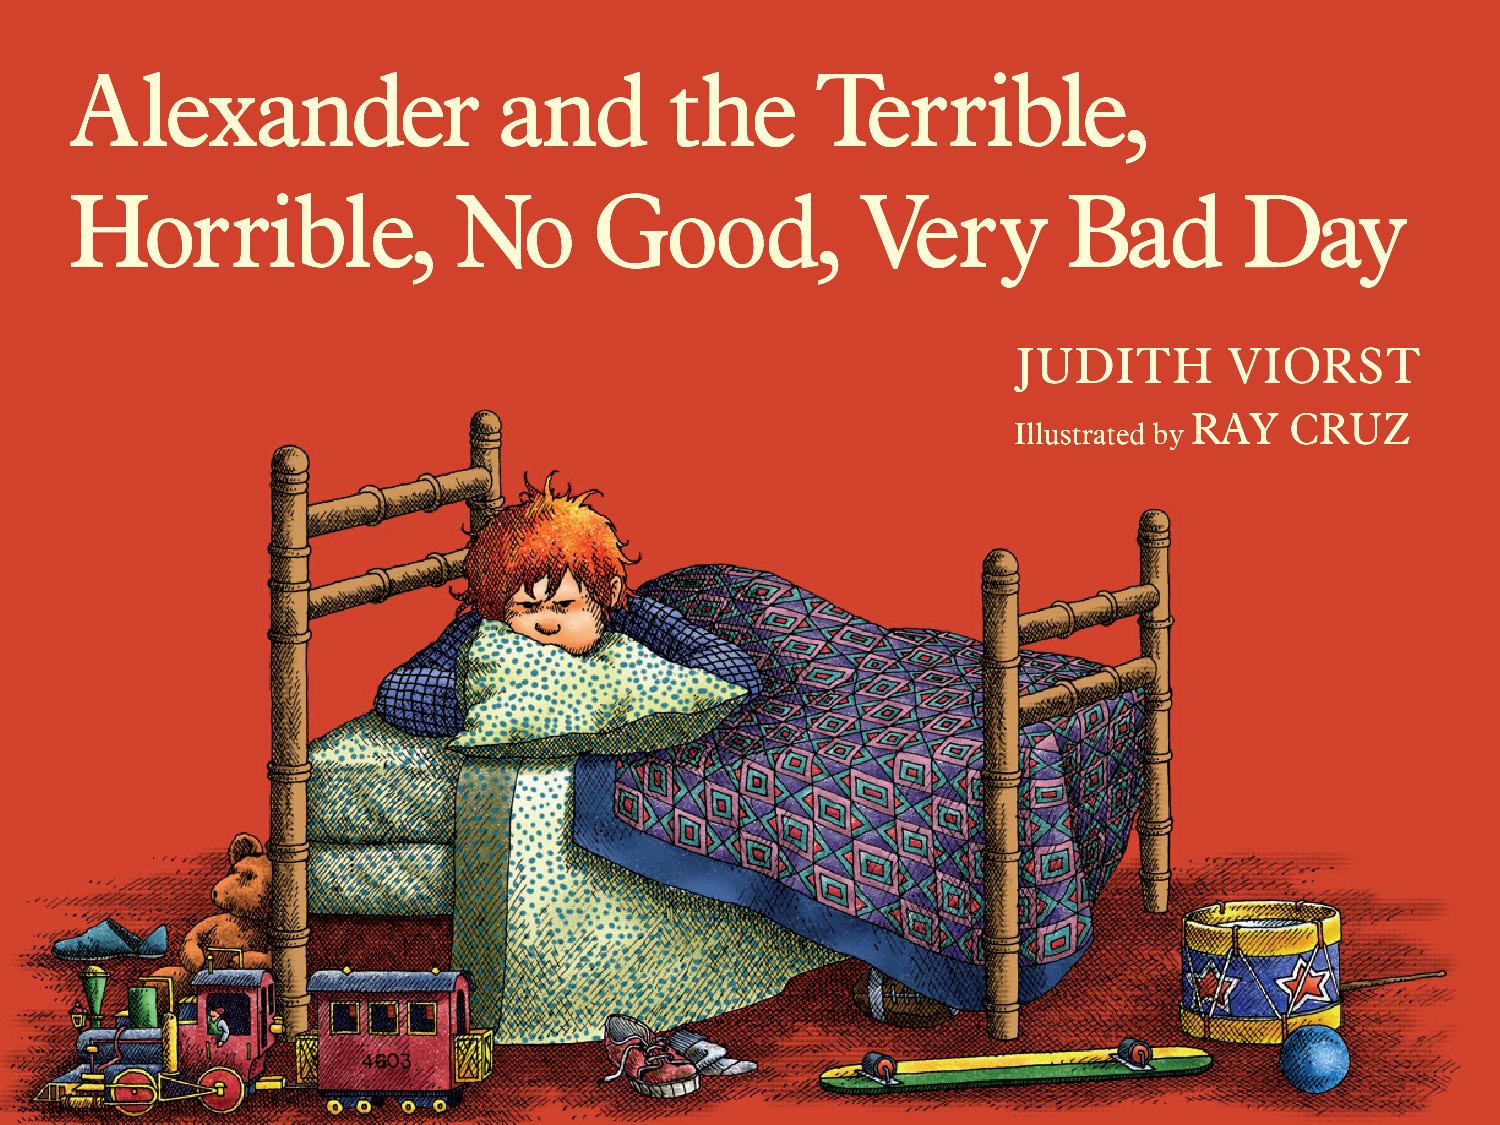 Alexander and the Terrible, Horrible, No Good, Very Bad Day By: Judith Viorst,Ray Cruz